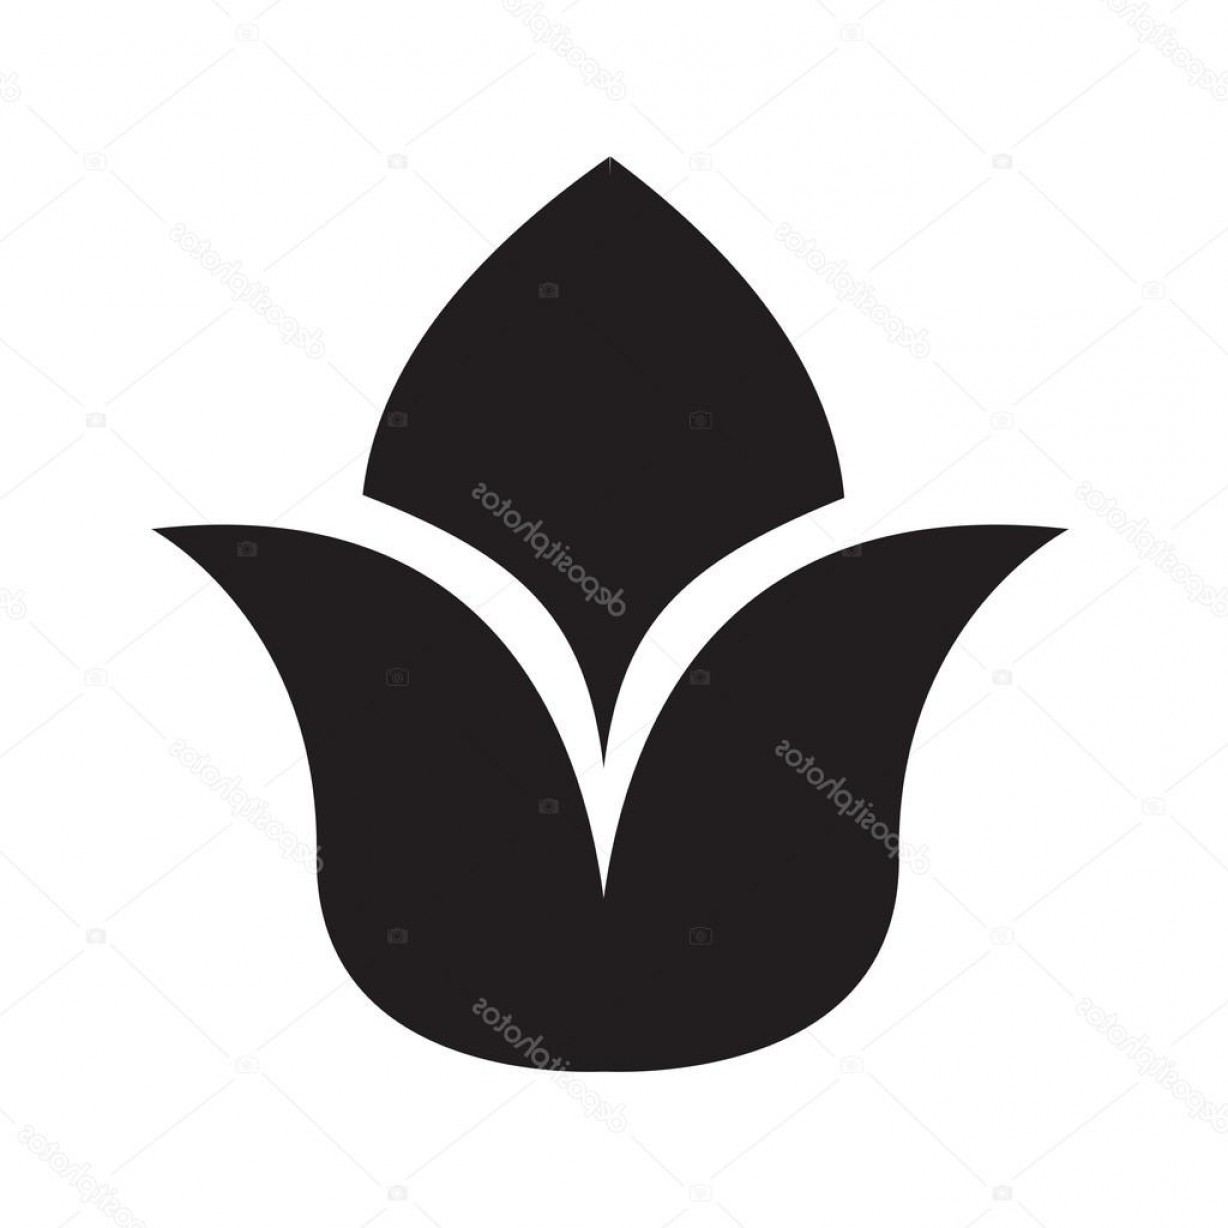 Icon Of Flower Vectors: Stock Illustration Flower Vector Icon Support Vectors